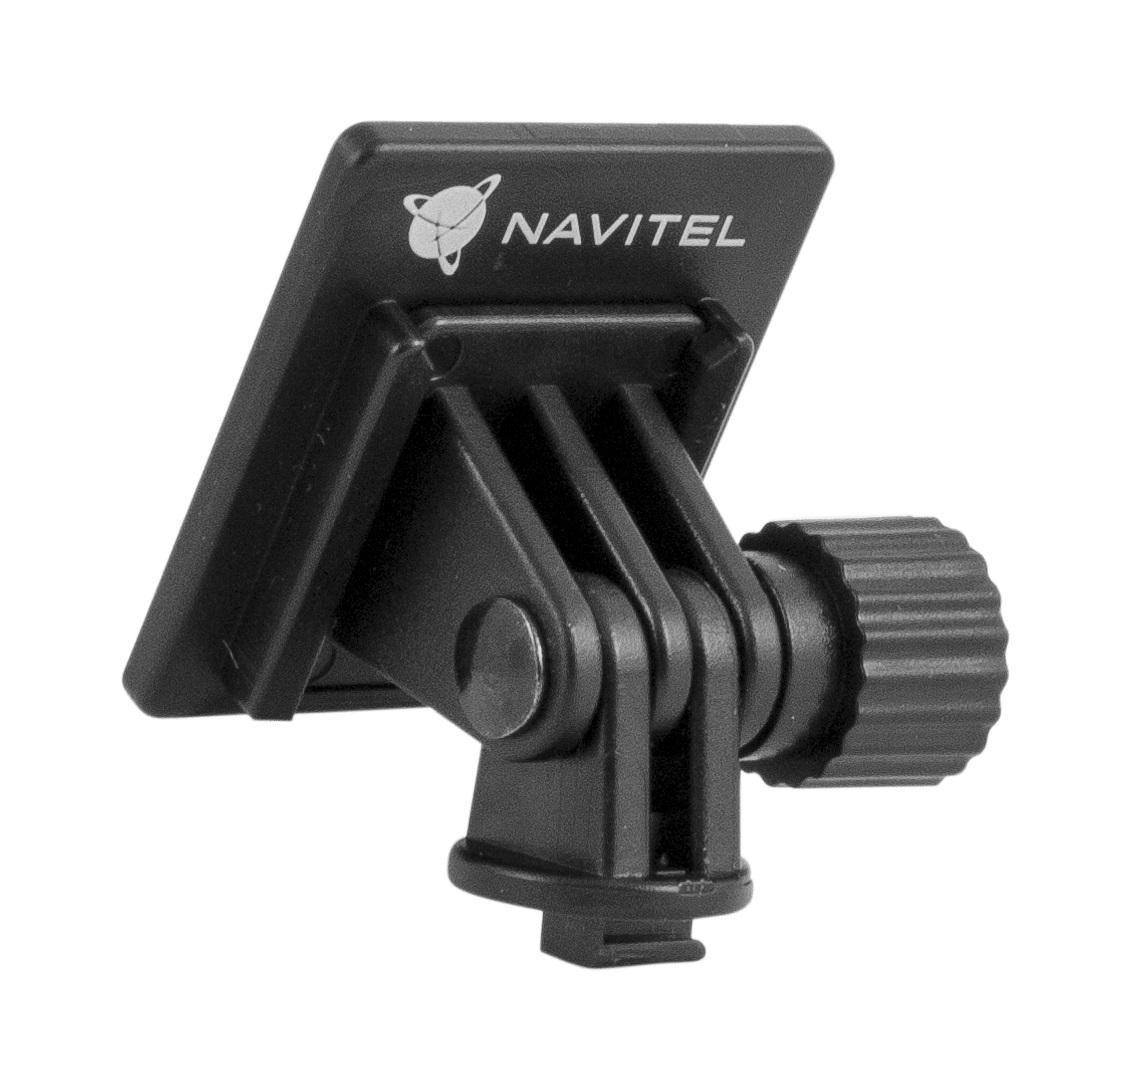 Dashcam NAVITEL NAVR400NV Bewertung